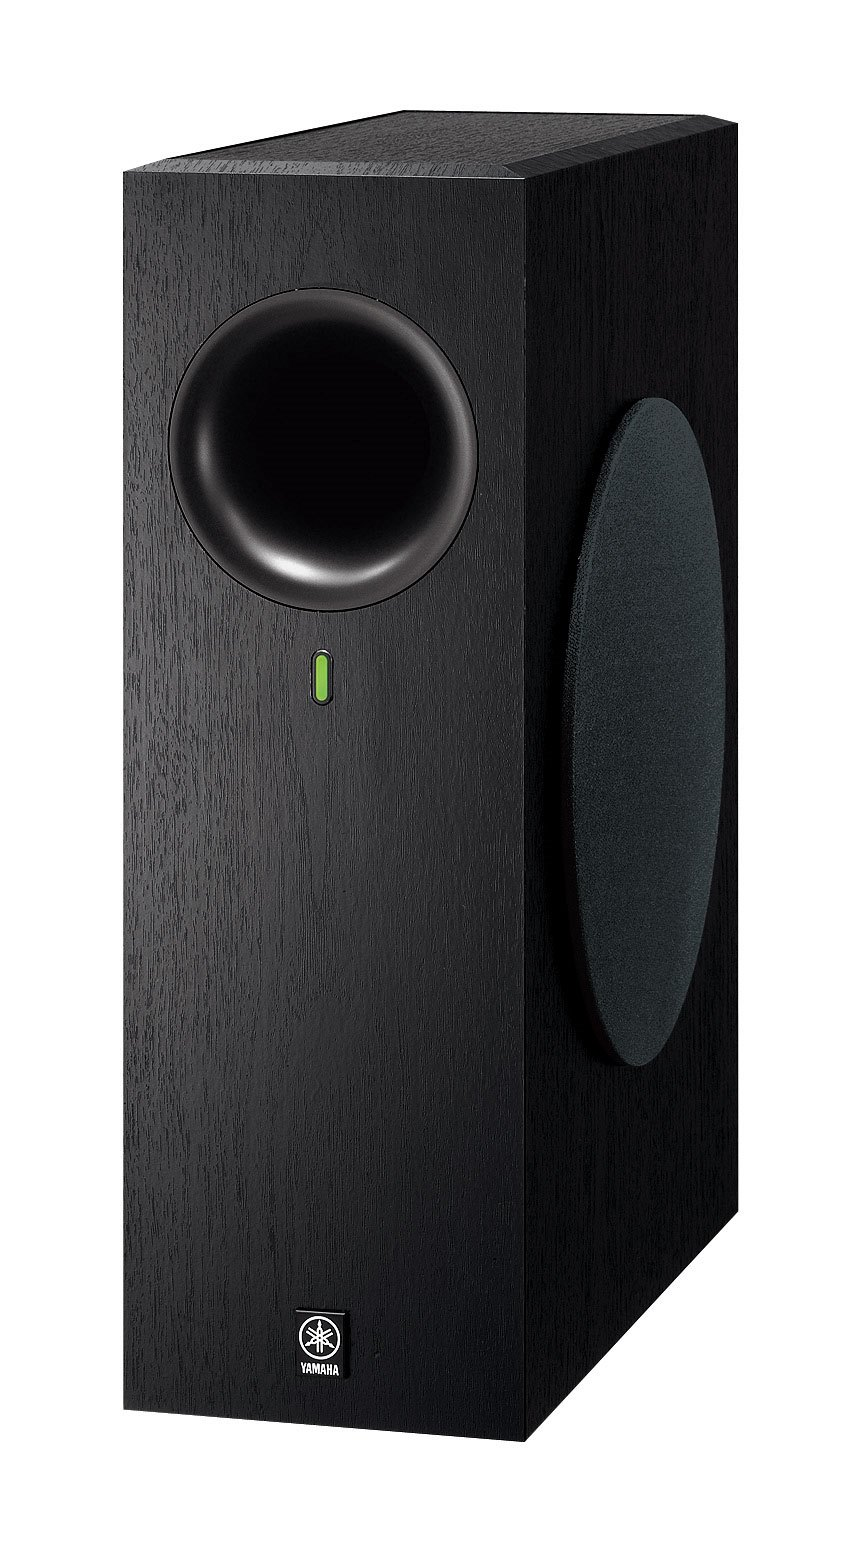 ns sw210 overview speakers audio visual products. Black Bedroom Furniture Sets. Home Design Ideas